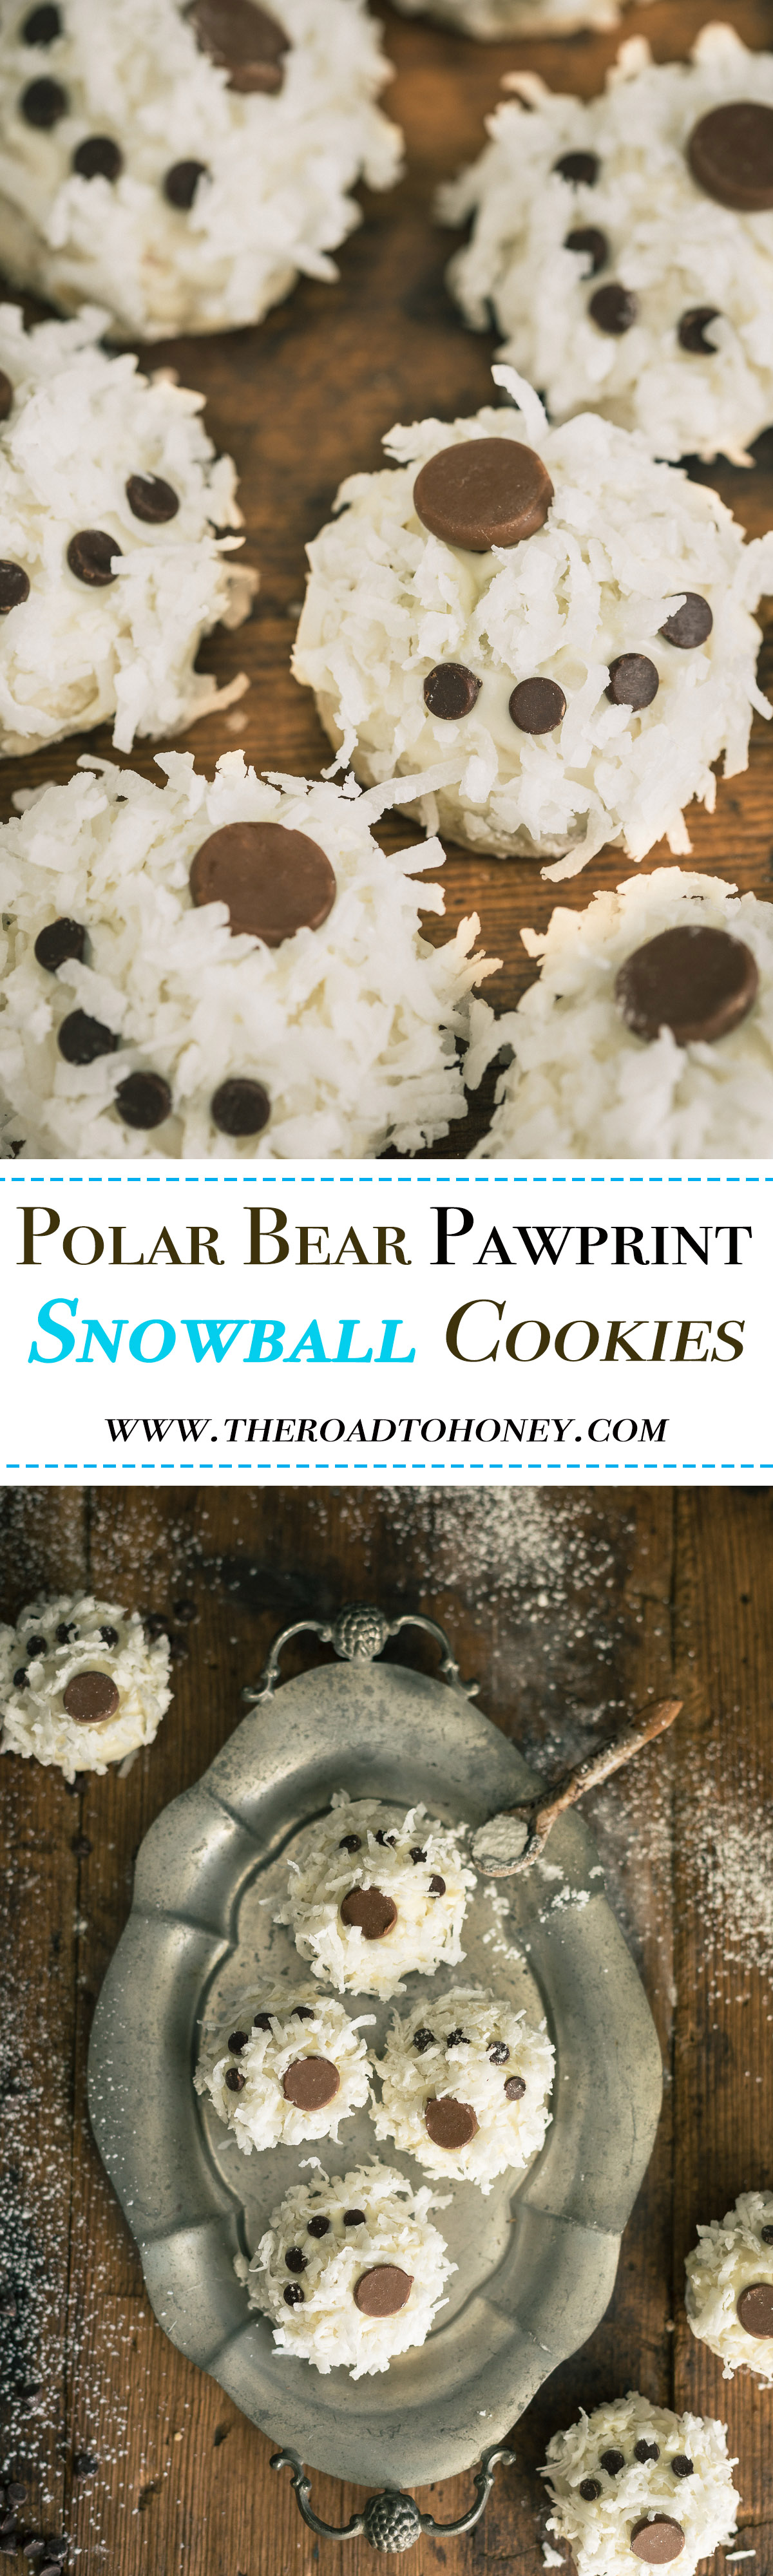 Polar Bear Paw Snowball Cookies - these light melt-in-your mouth nutty, buttery cookies are dipped in a decadent white chocolate & coated with a sprinkling of coconut & chocolate chips for a fun, playful look. They're not only perfect for the holidays but equally fun for snow days and birthday parties. Click for RECIPE.